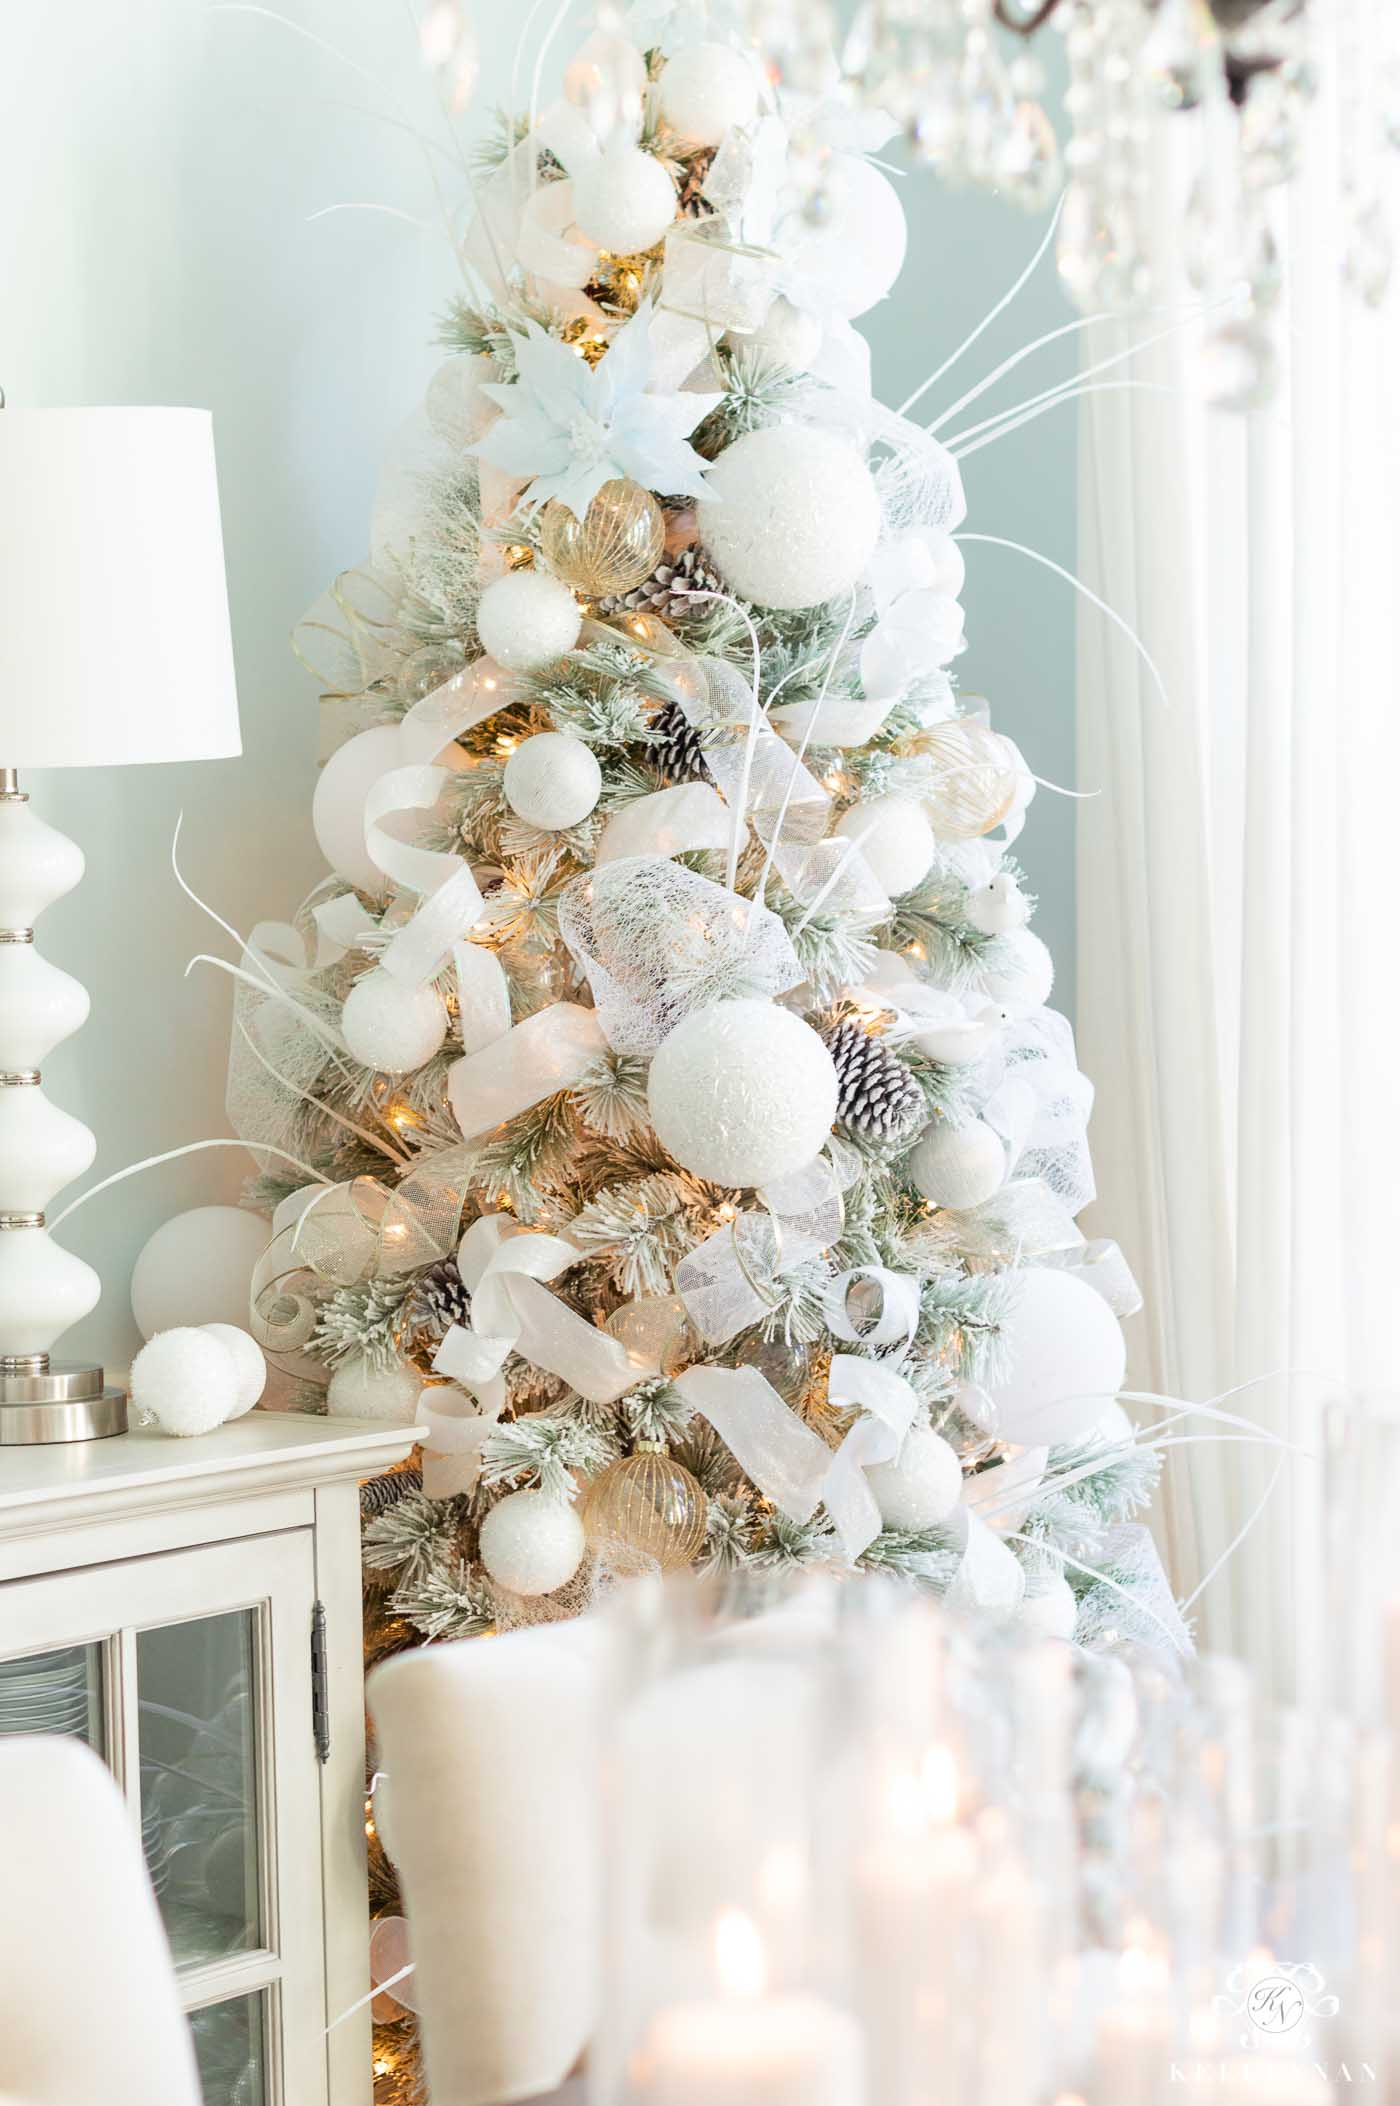 Snowy White and Icy Blue Christmas Decor in the Dining Room!